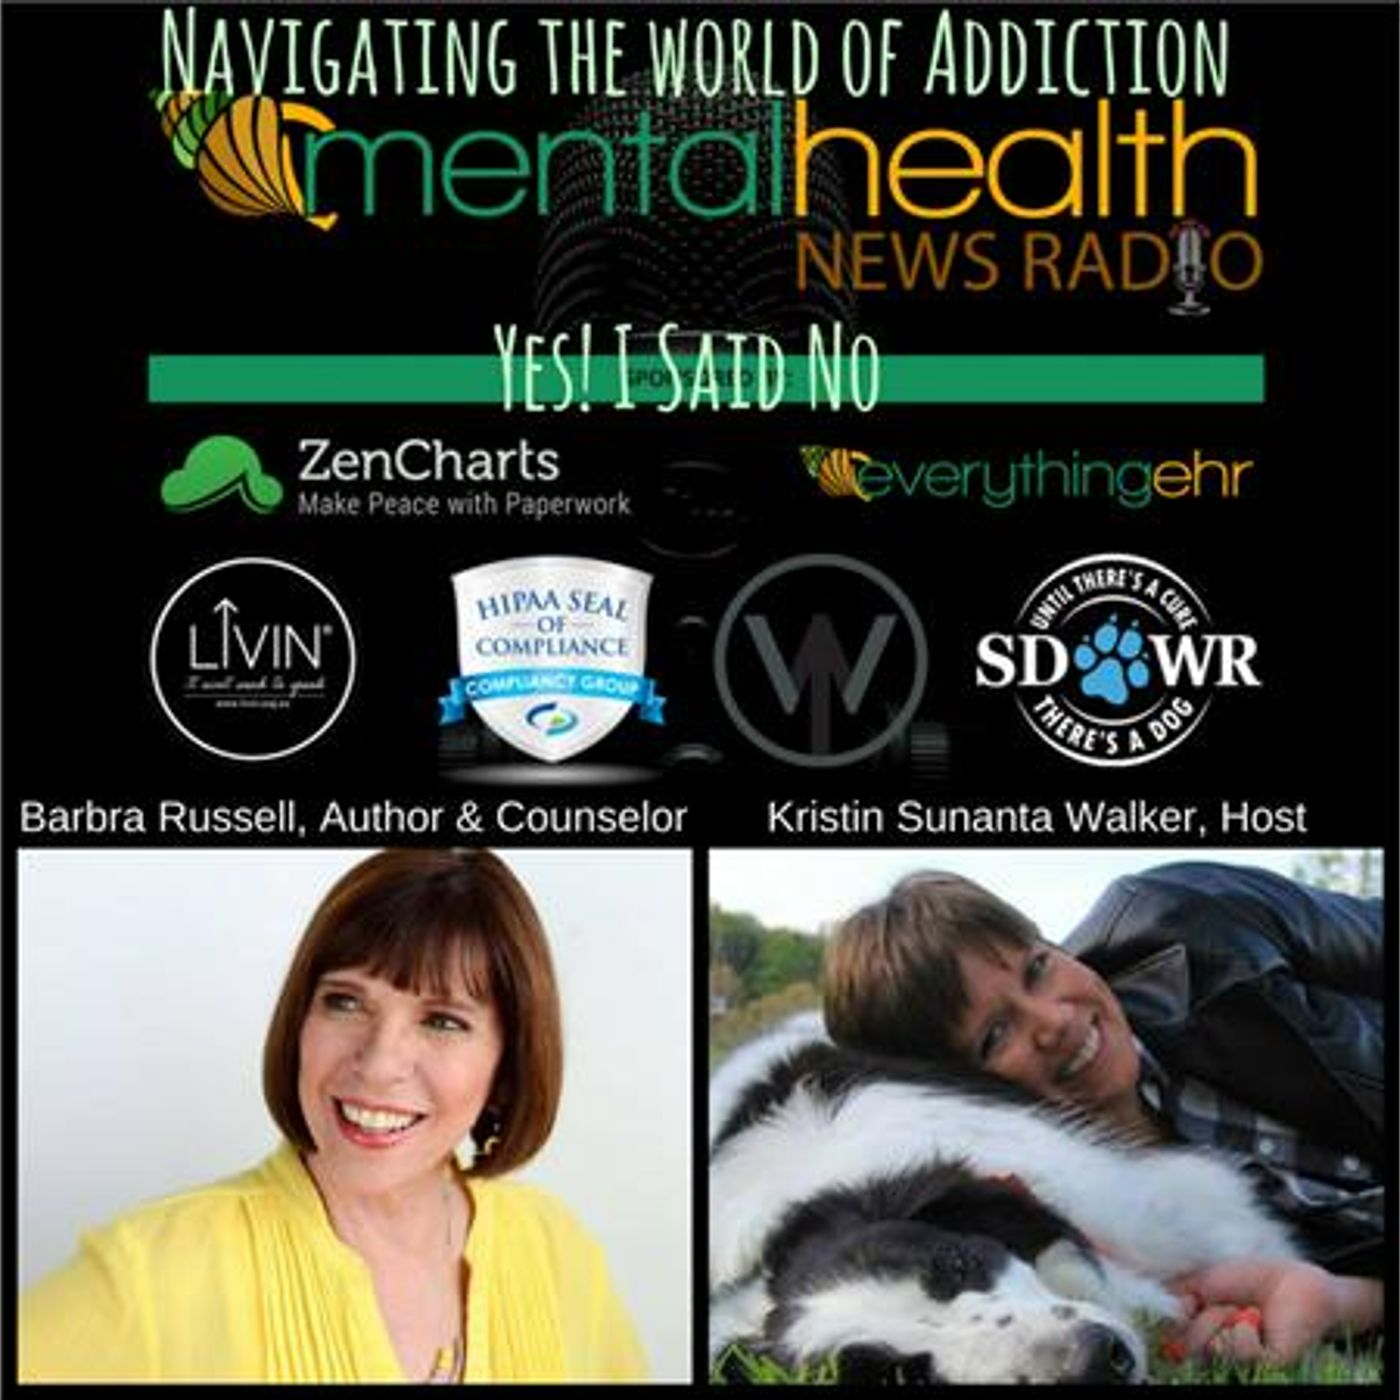 Mental Health News Radio - Navigating The World of Addiction: Yes! I Said No with Barbra Russell